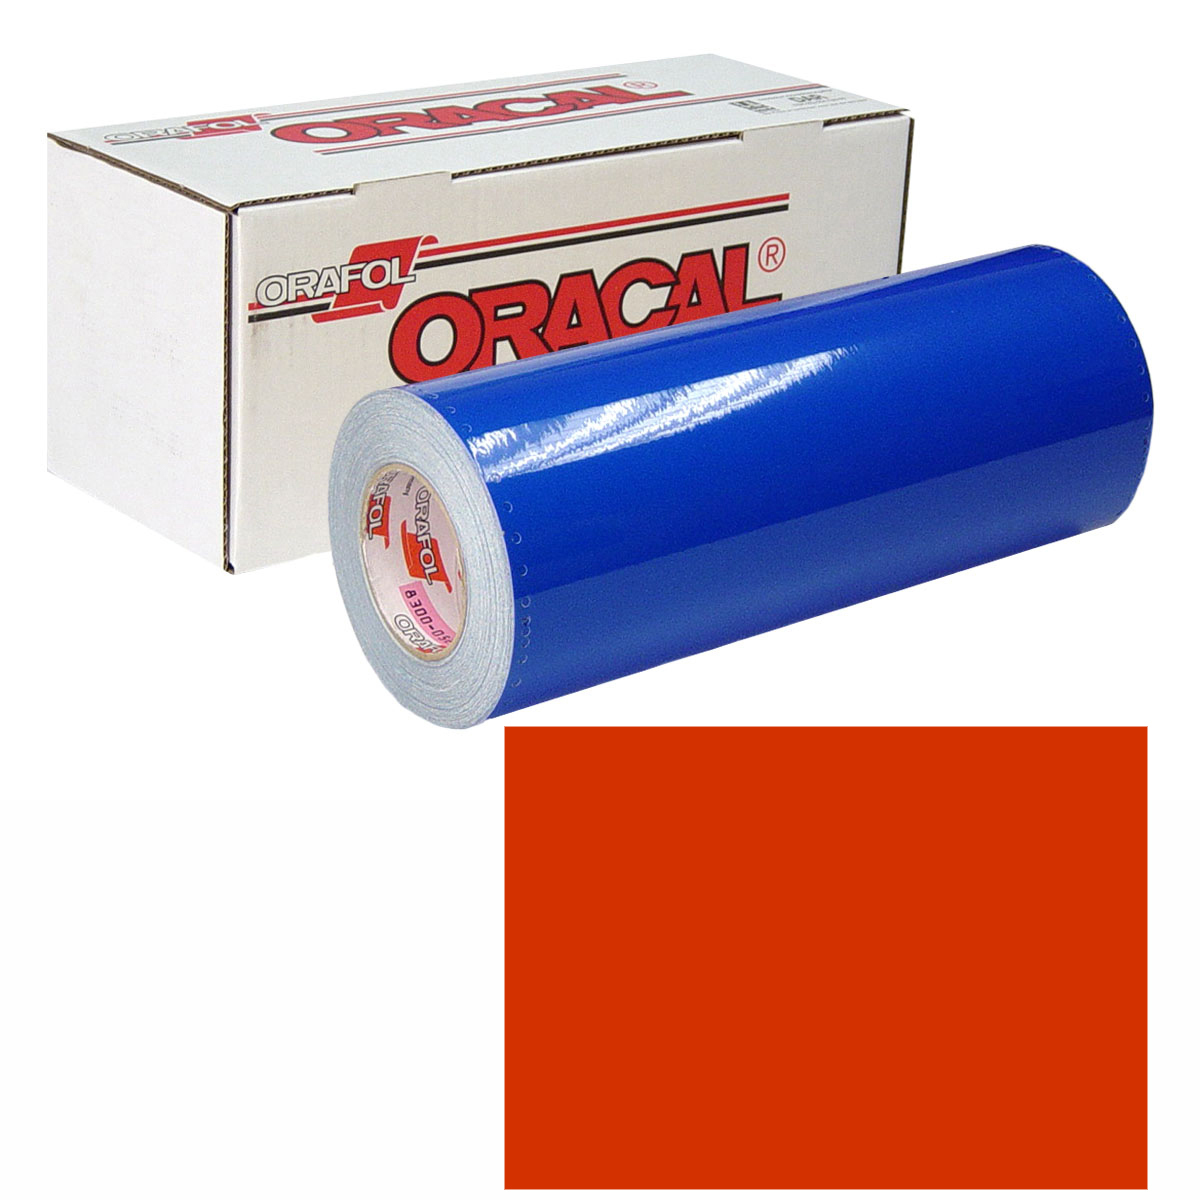 ORACAL 631 Unp 30in X 50yd 047 Orange Red